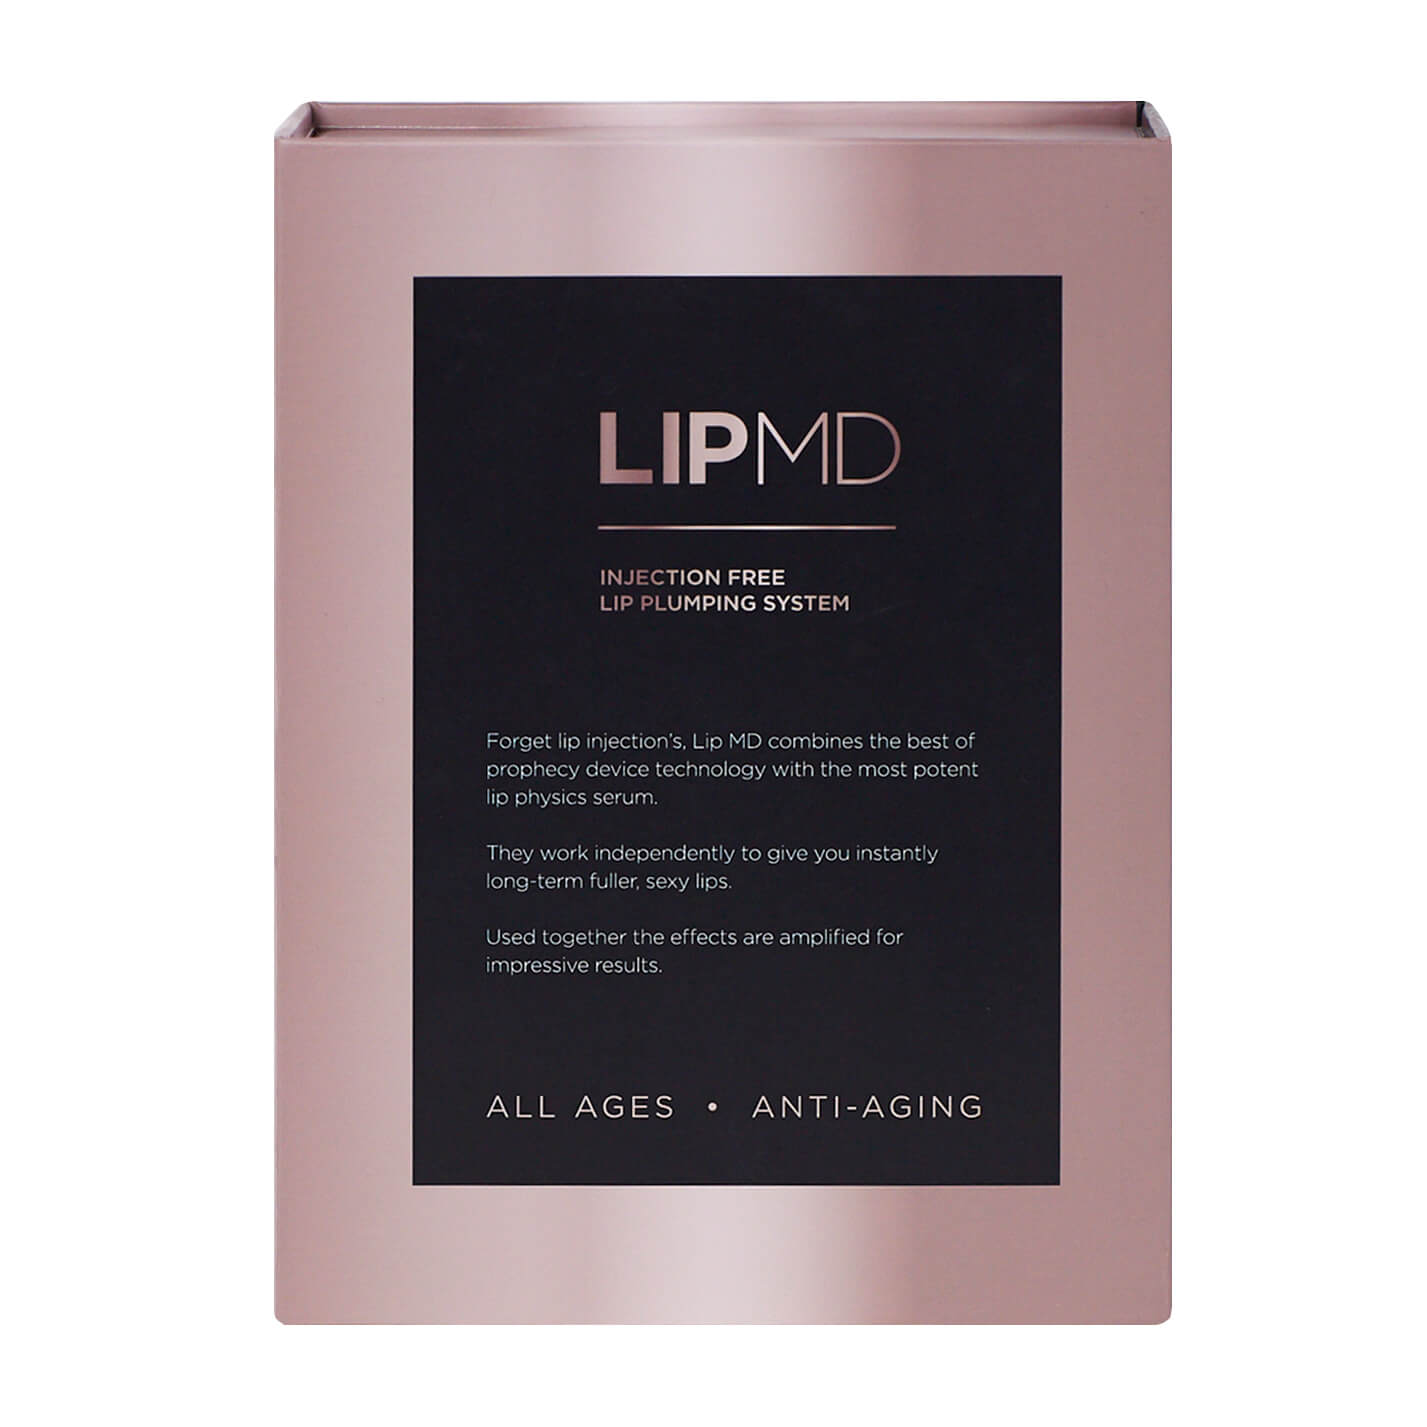 WOW LIPMD® Launch OFFER- SAVE 40% today - C